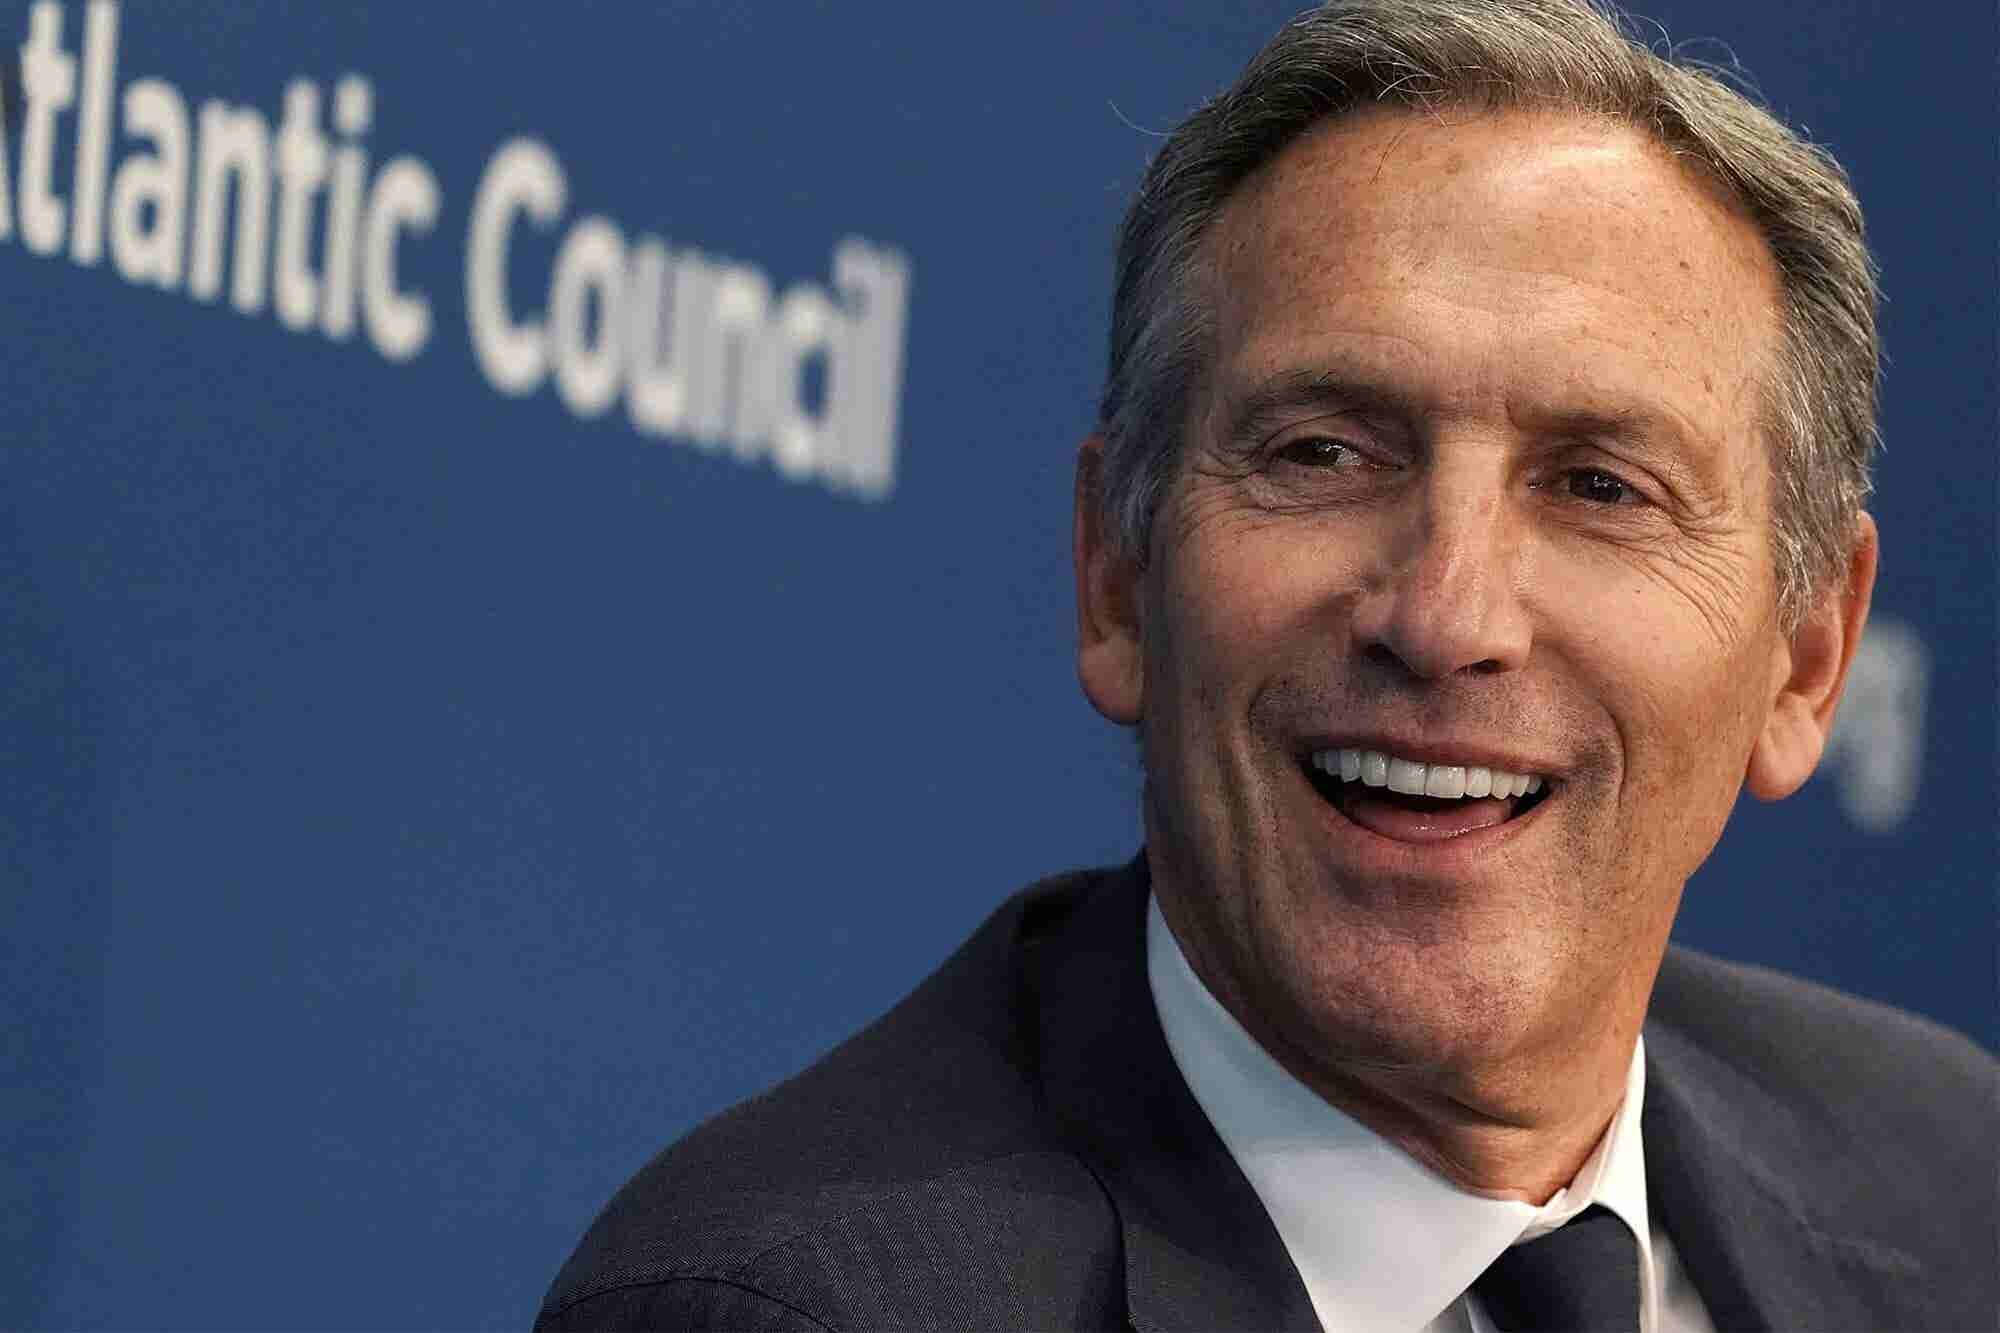 Former Starbucks CEO Howard Schultz Says He's Considering a 2020 Run 'to Restore Dignity and Honor Back in the Oval Office'